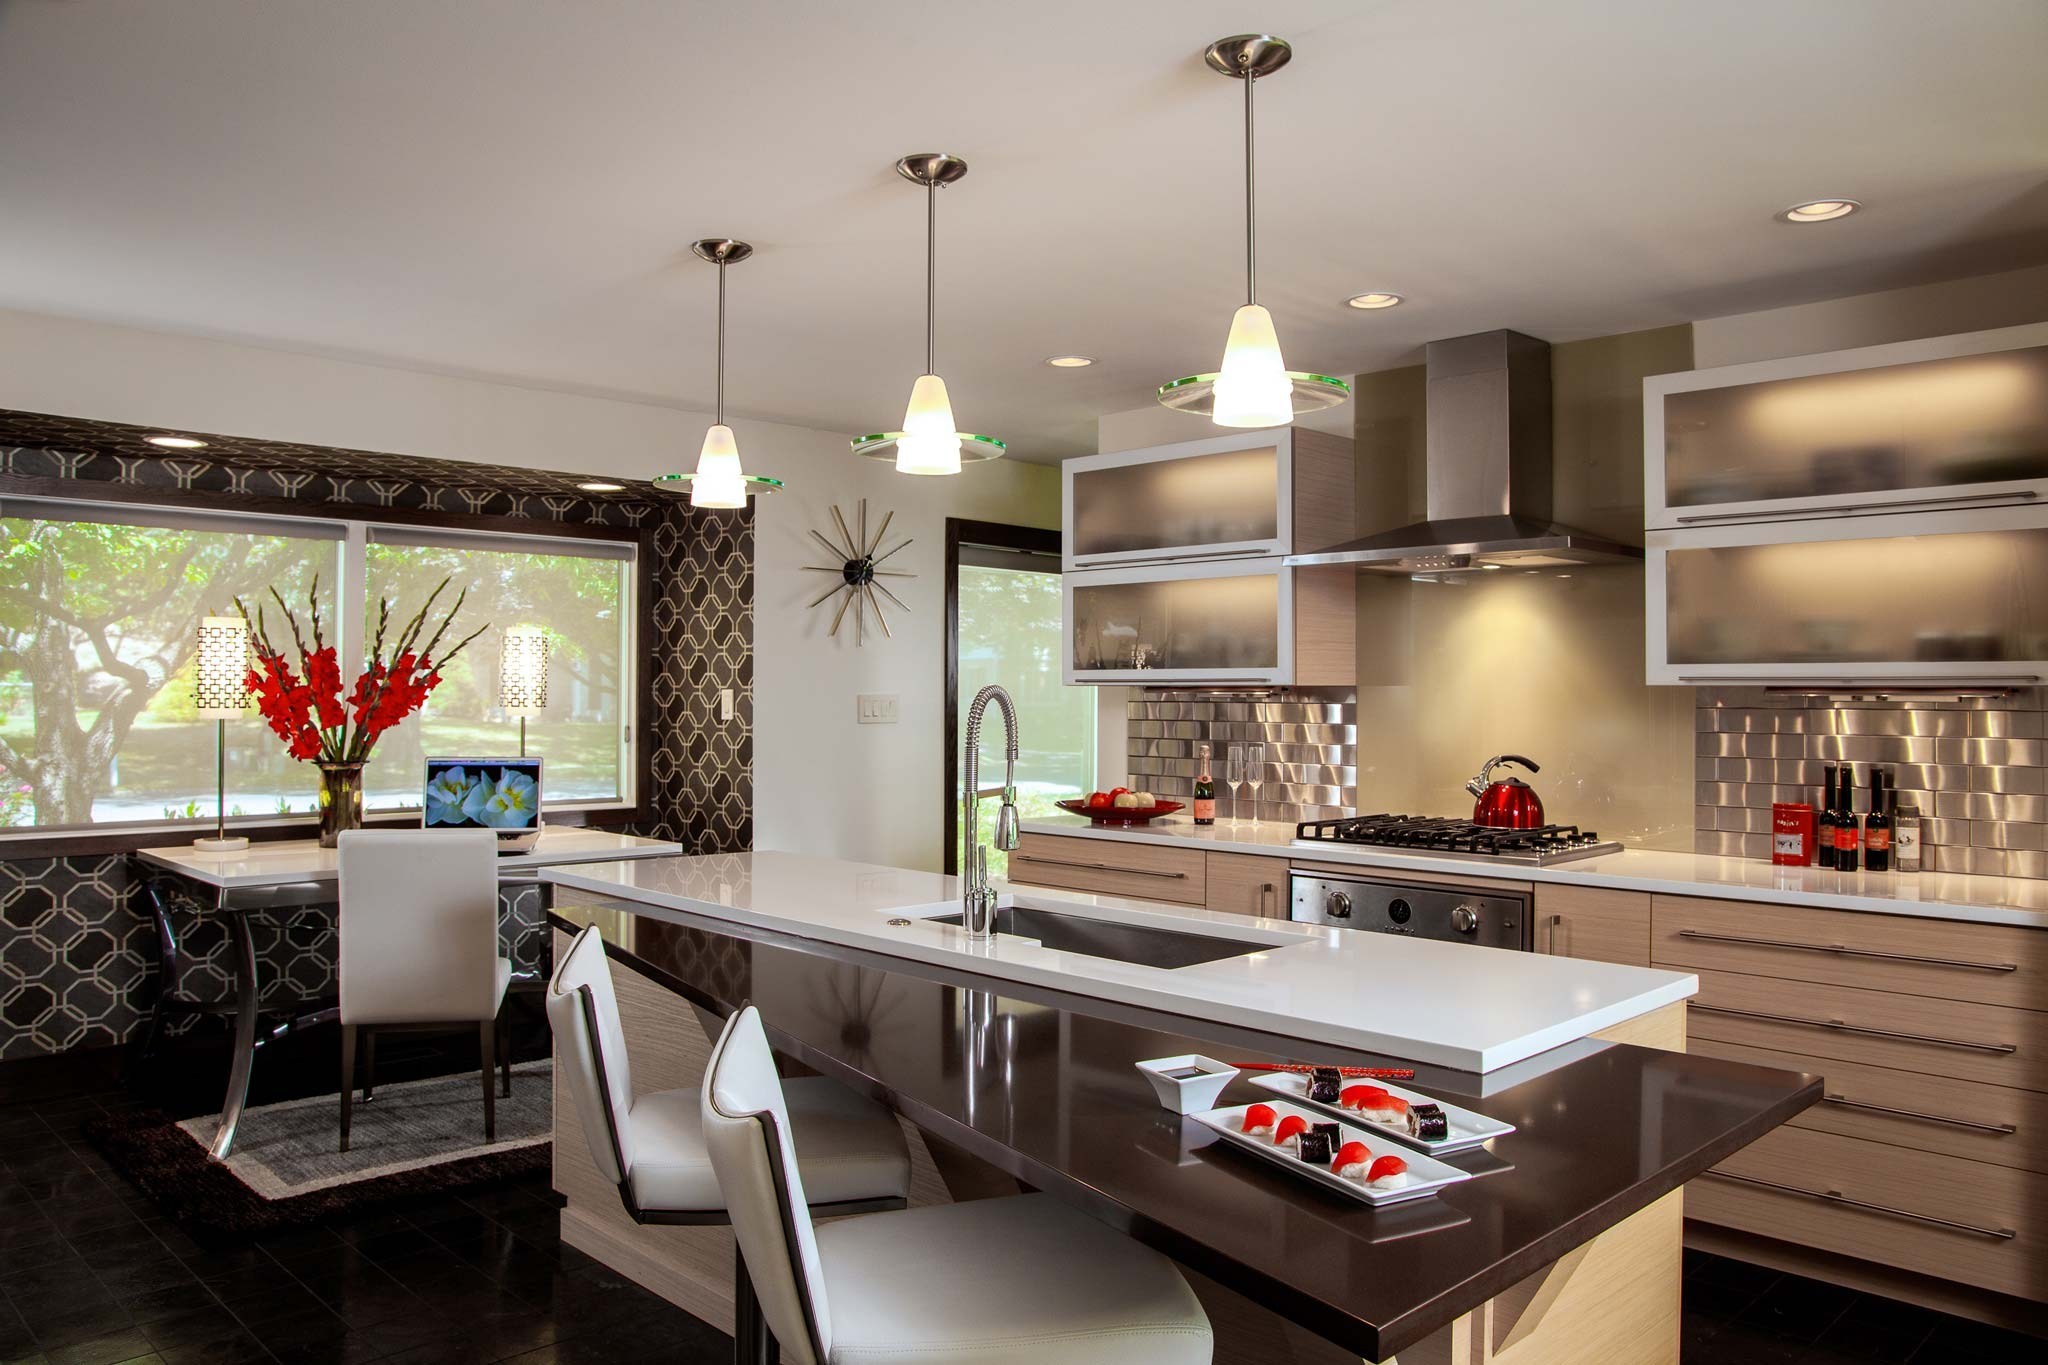 70s ranch style kitchen remodel camp hill pa galley kitchen remodels By John Petrie